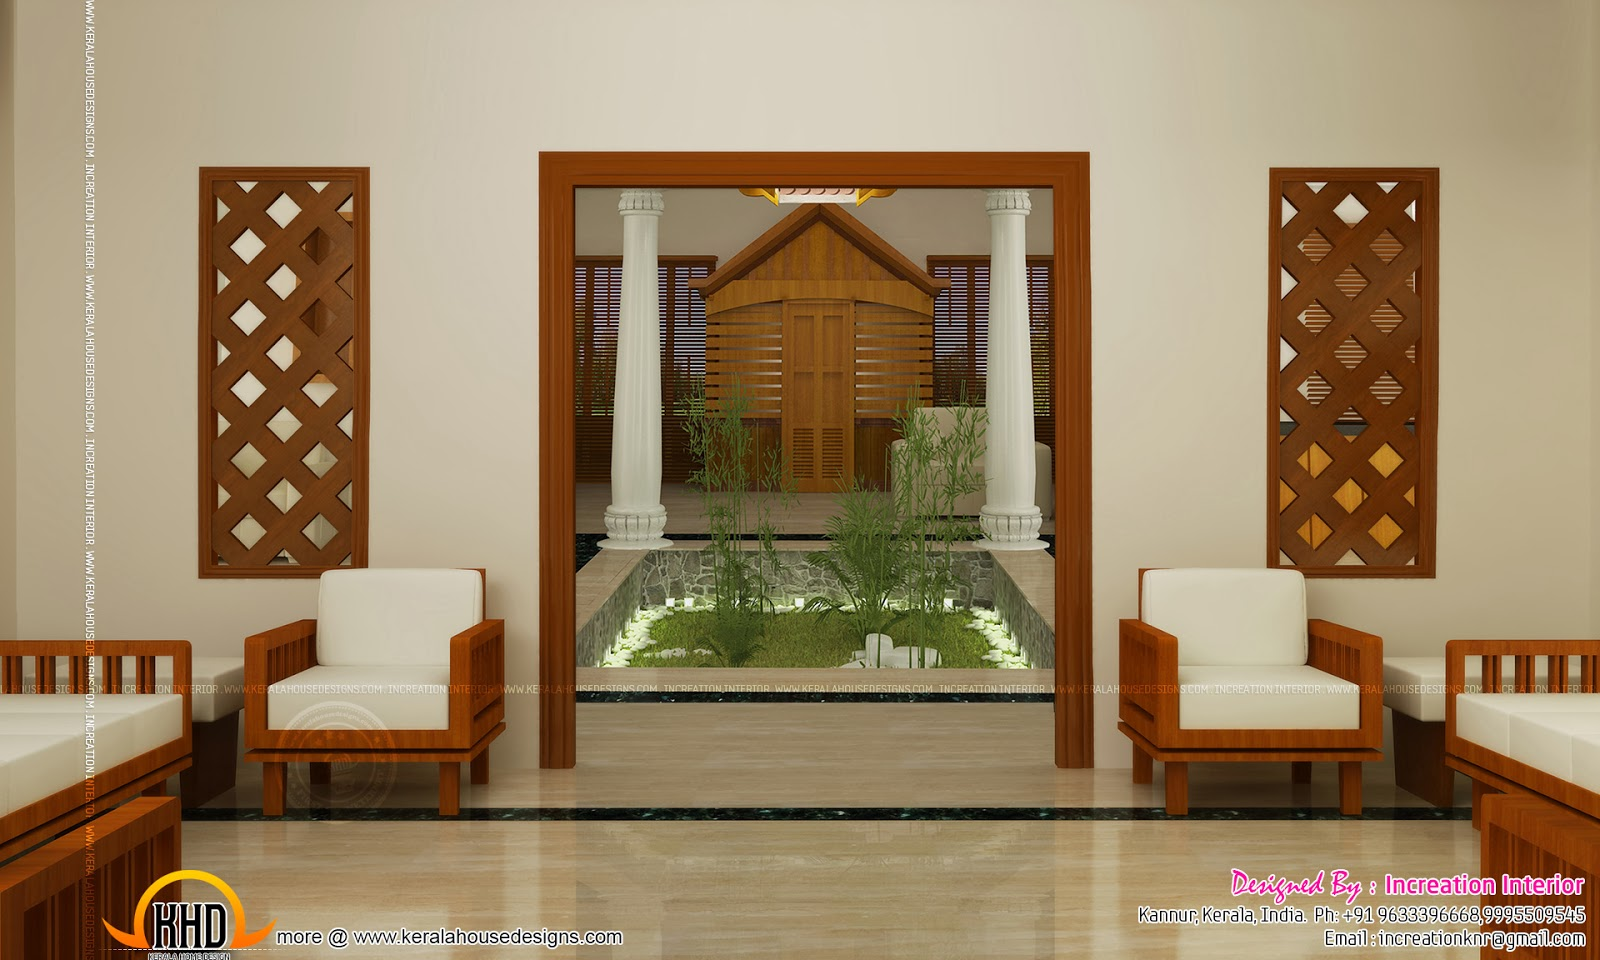 Beautiful home interiors kerala home design and floor plans for Kerala homes interior designs